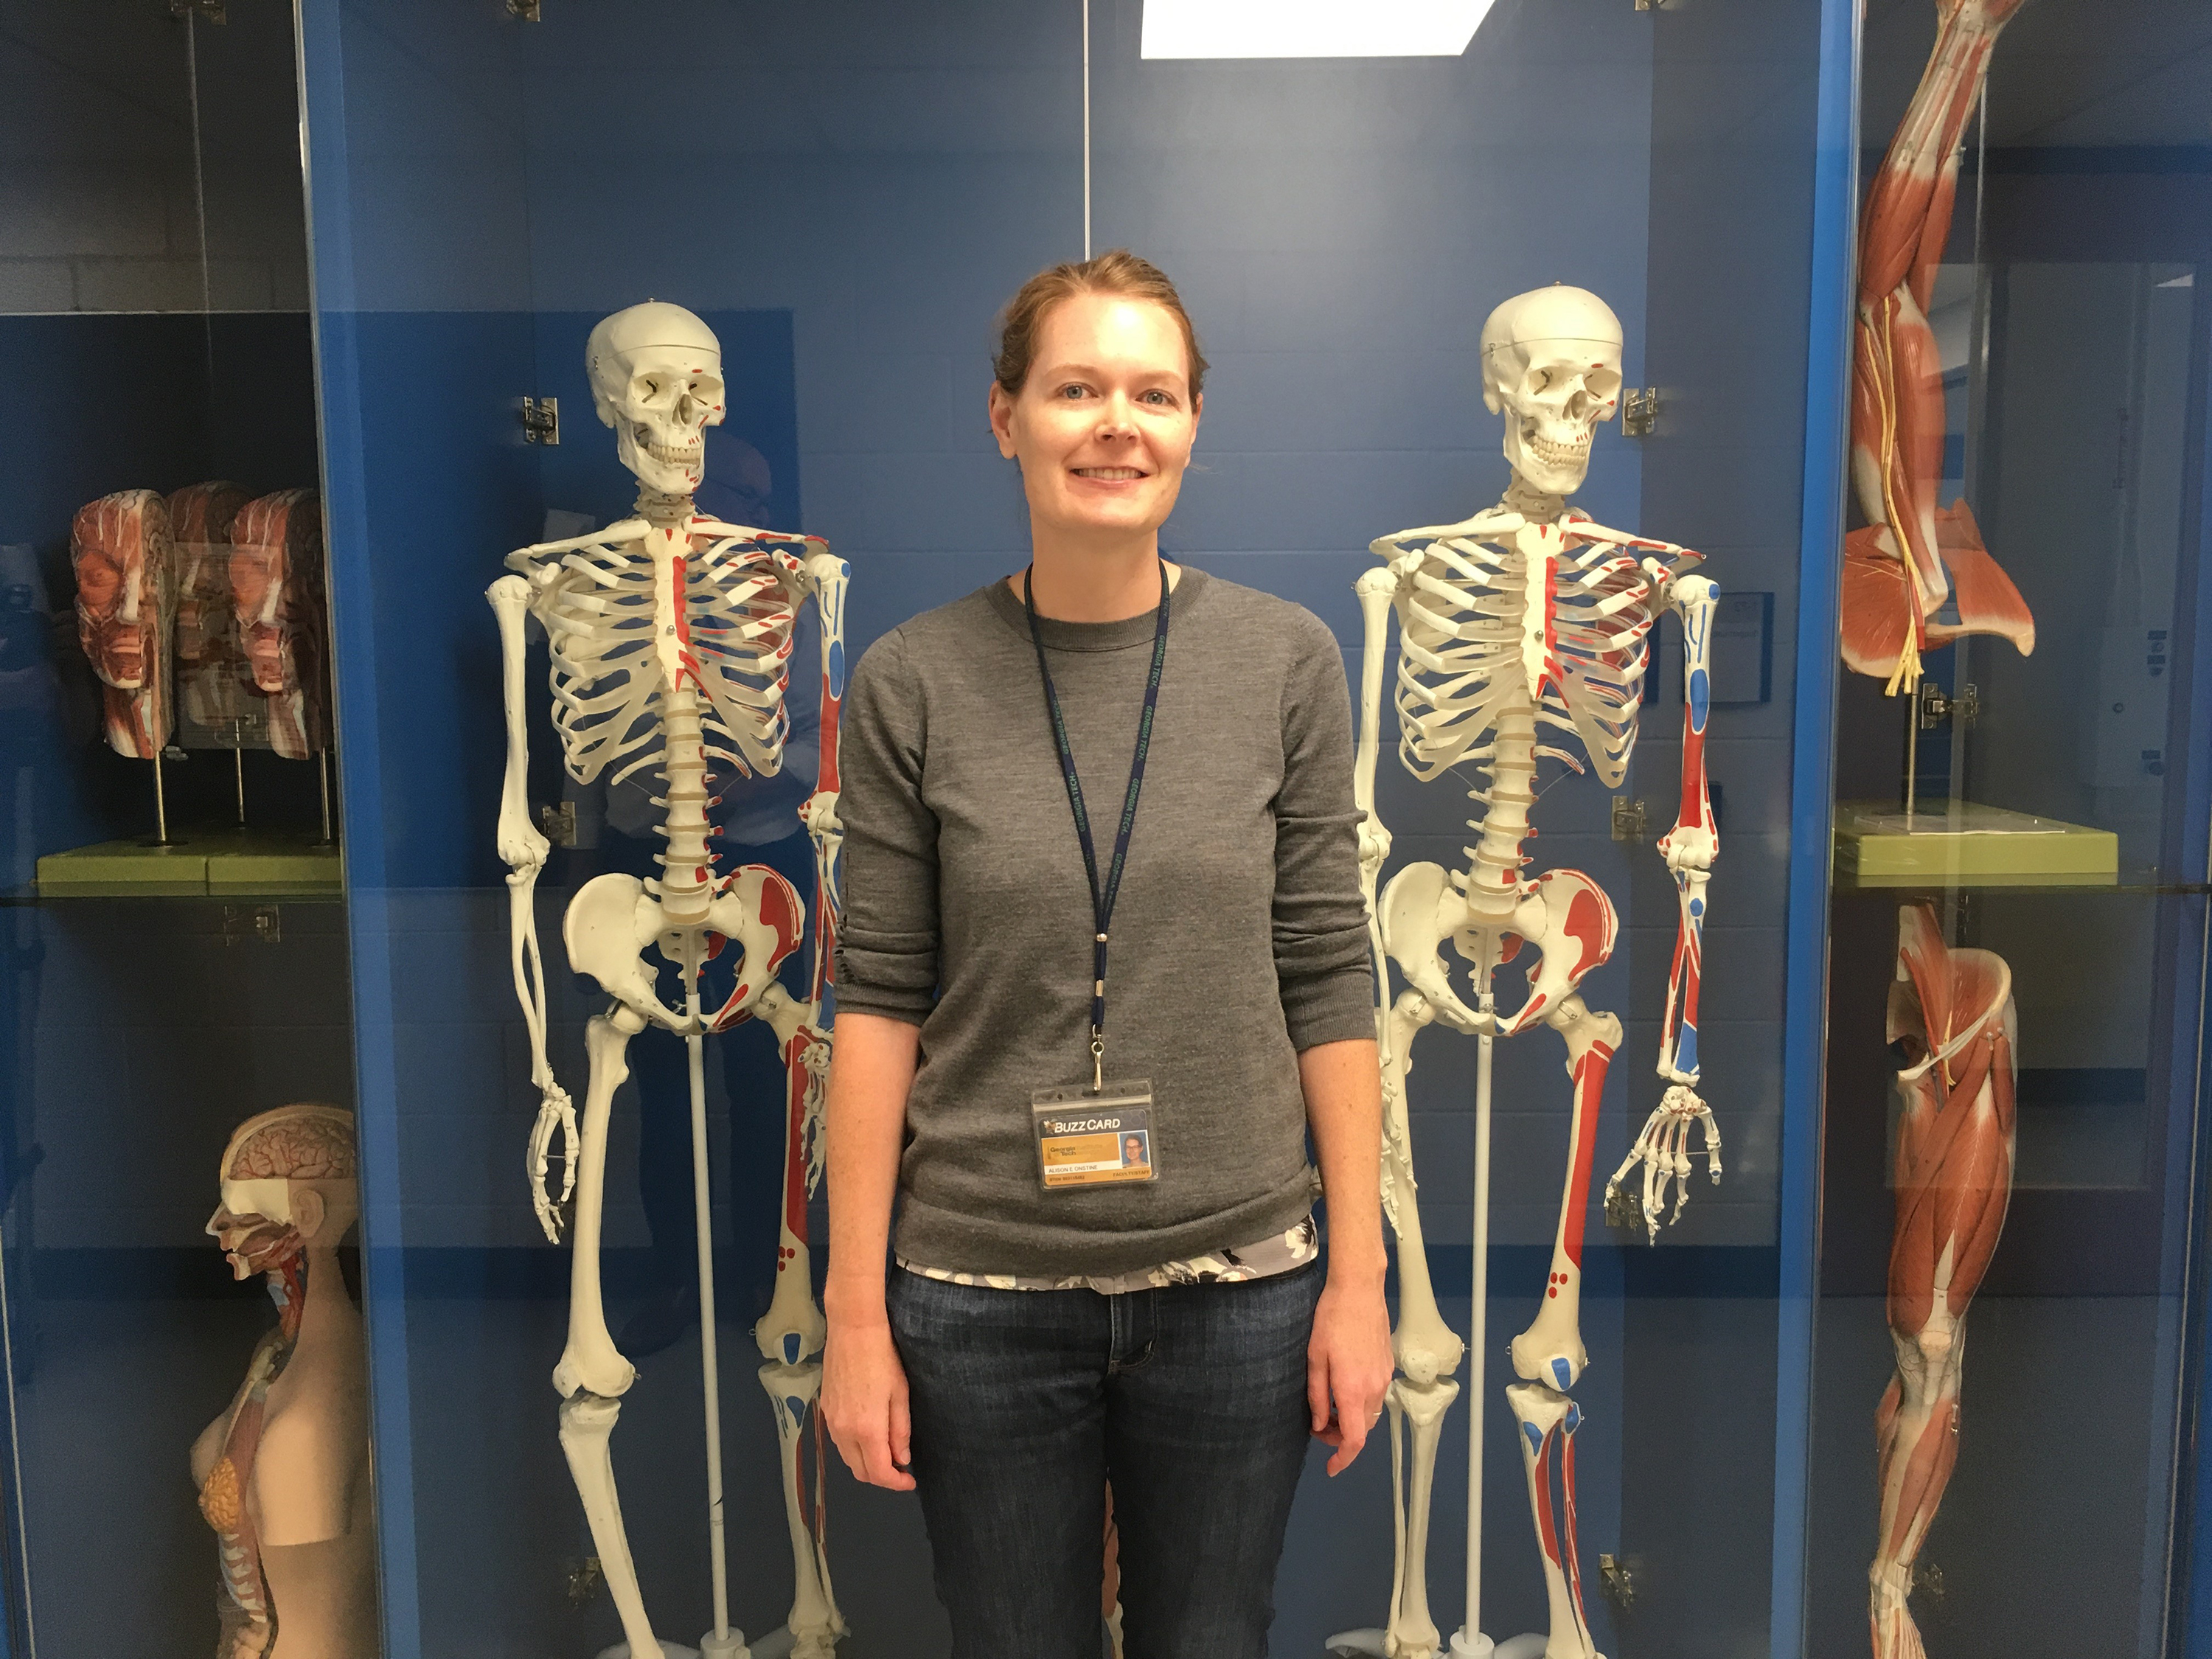 Alison Onstine by the anatomy display case in Boggs (Photo by Maureen Rouhi)